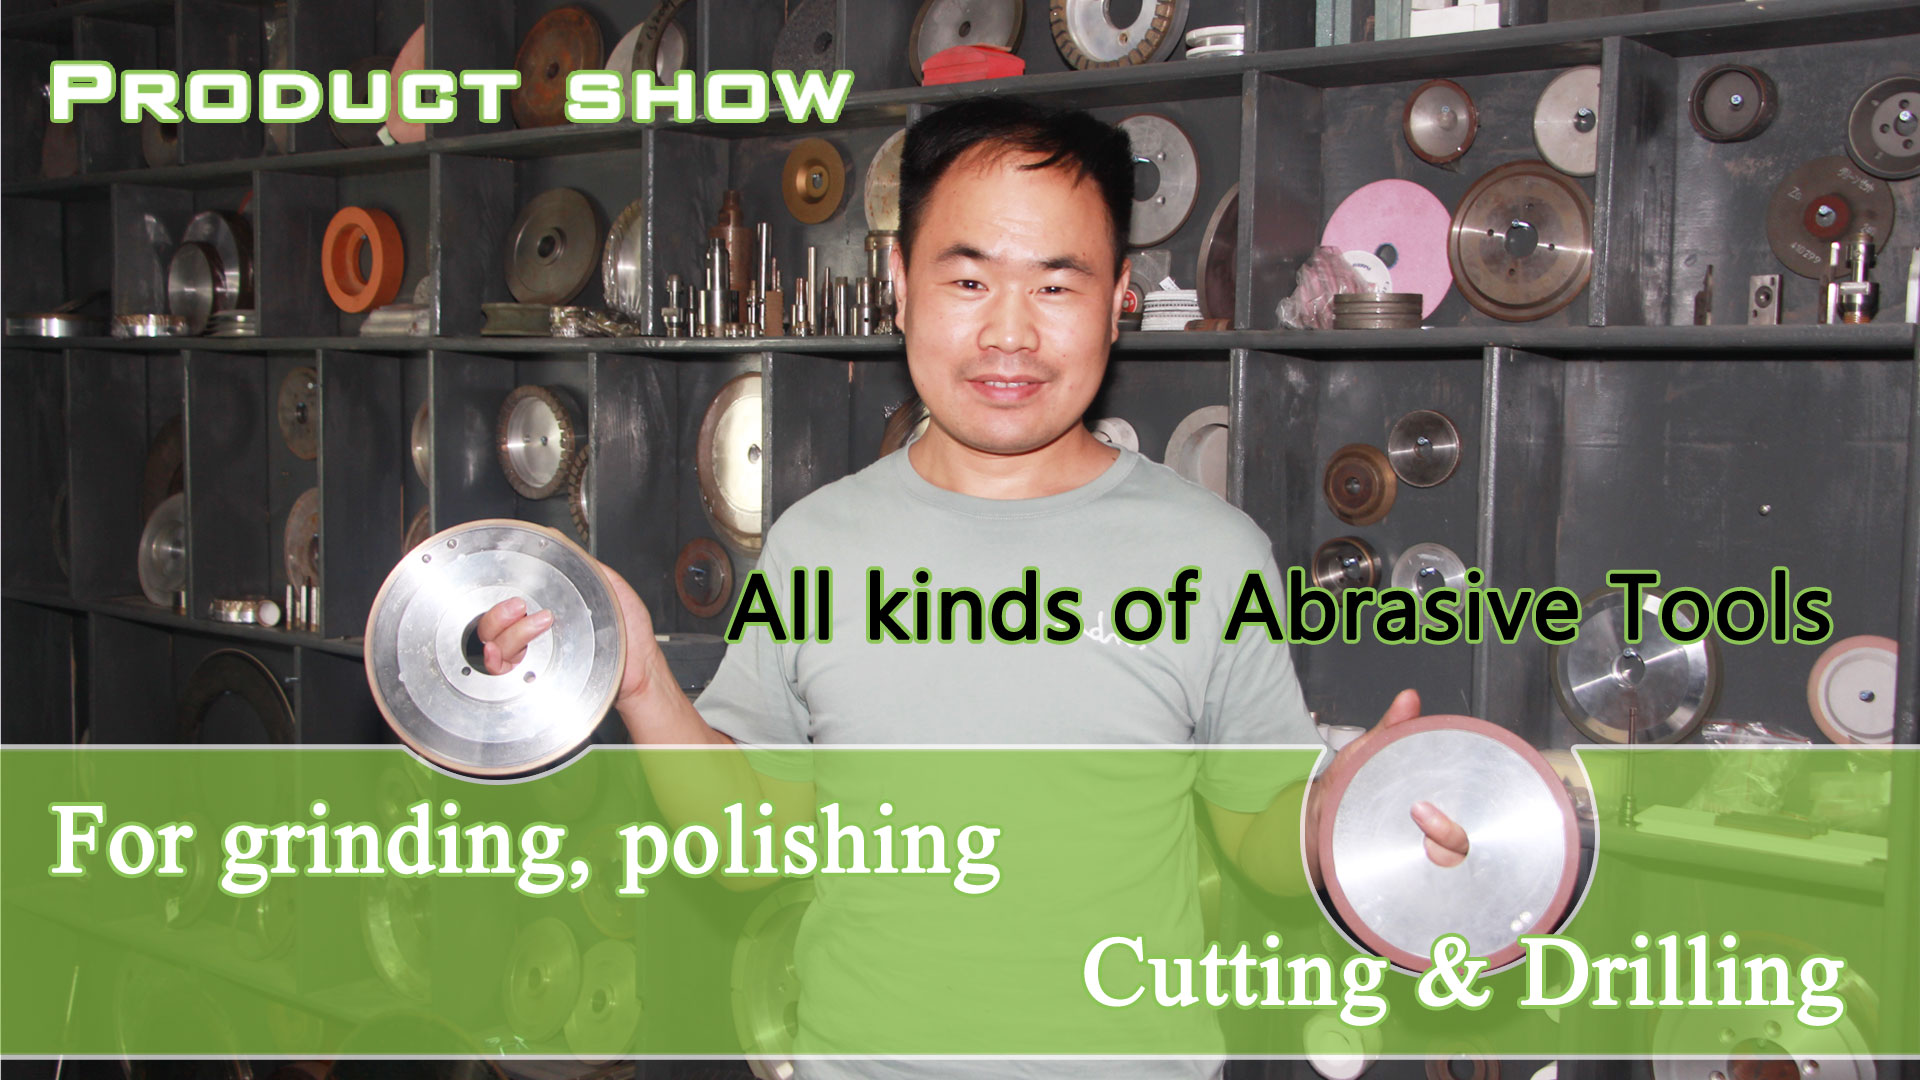 Grinding Polishing Cutting and Drilling Abrasive Tools - Forturetools